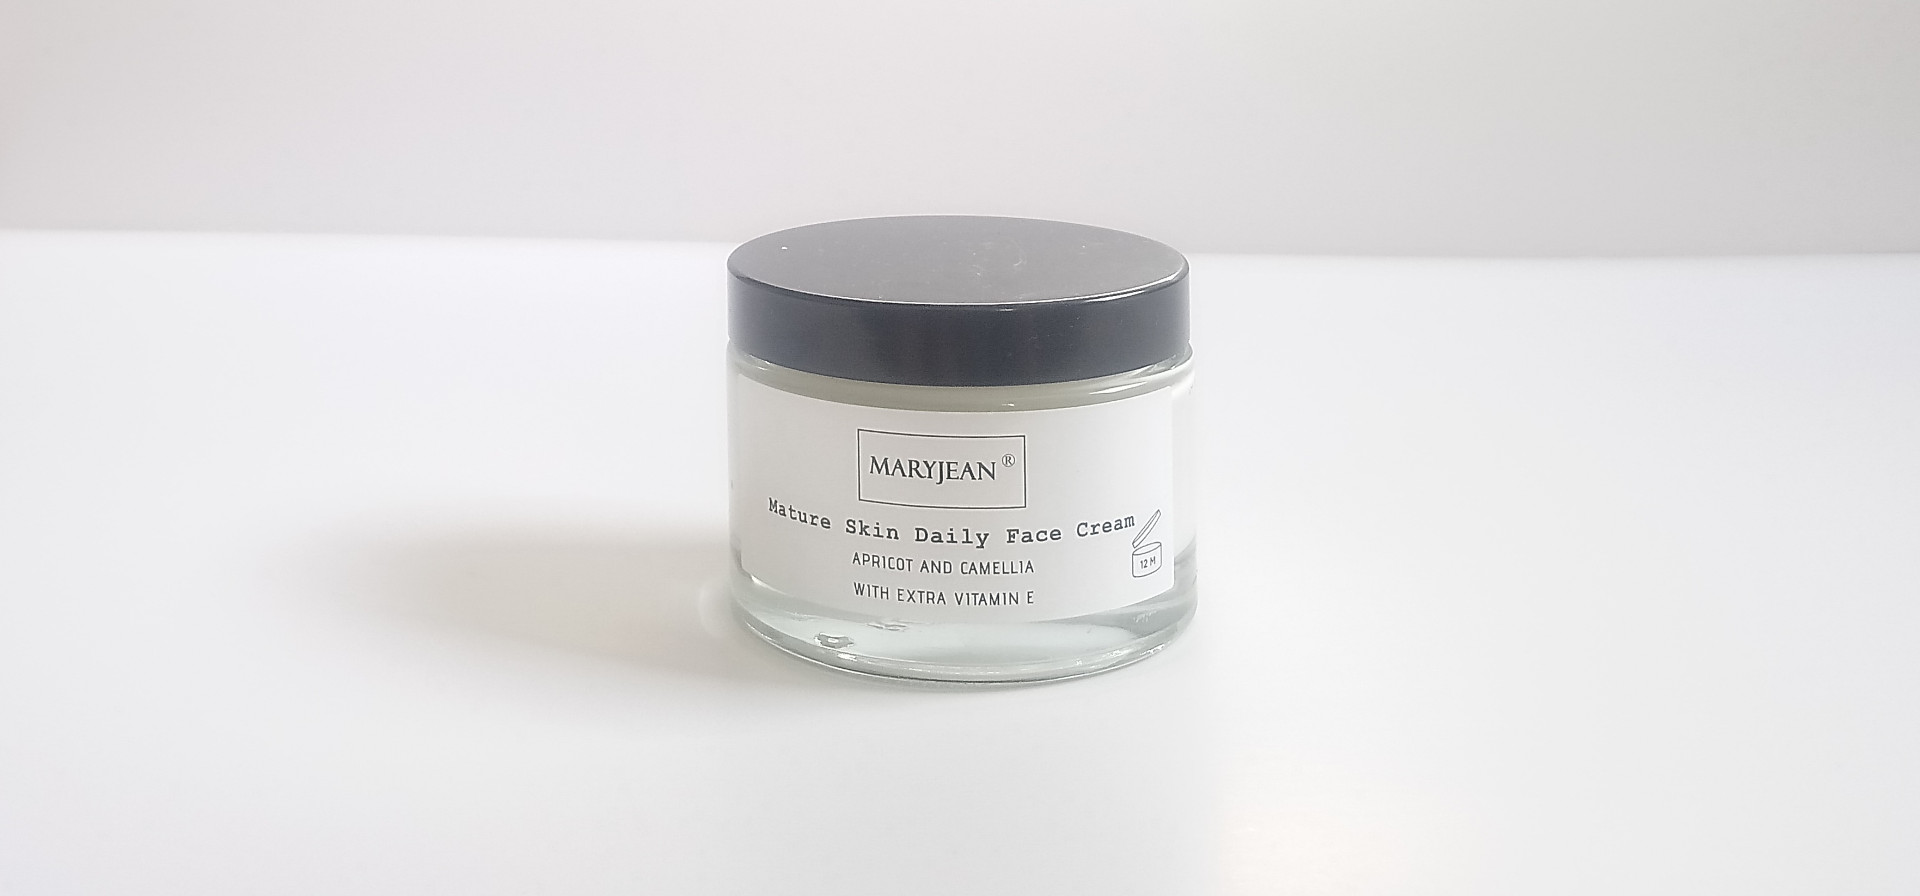 Mature Skin Daily Face Cream With Apricot And Camellia en_GB